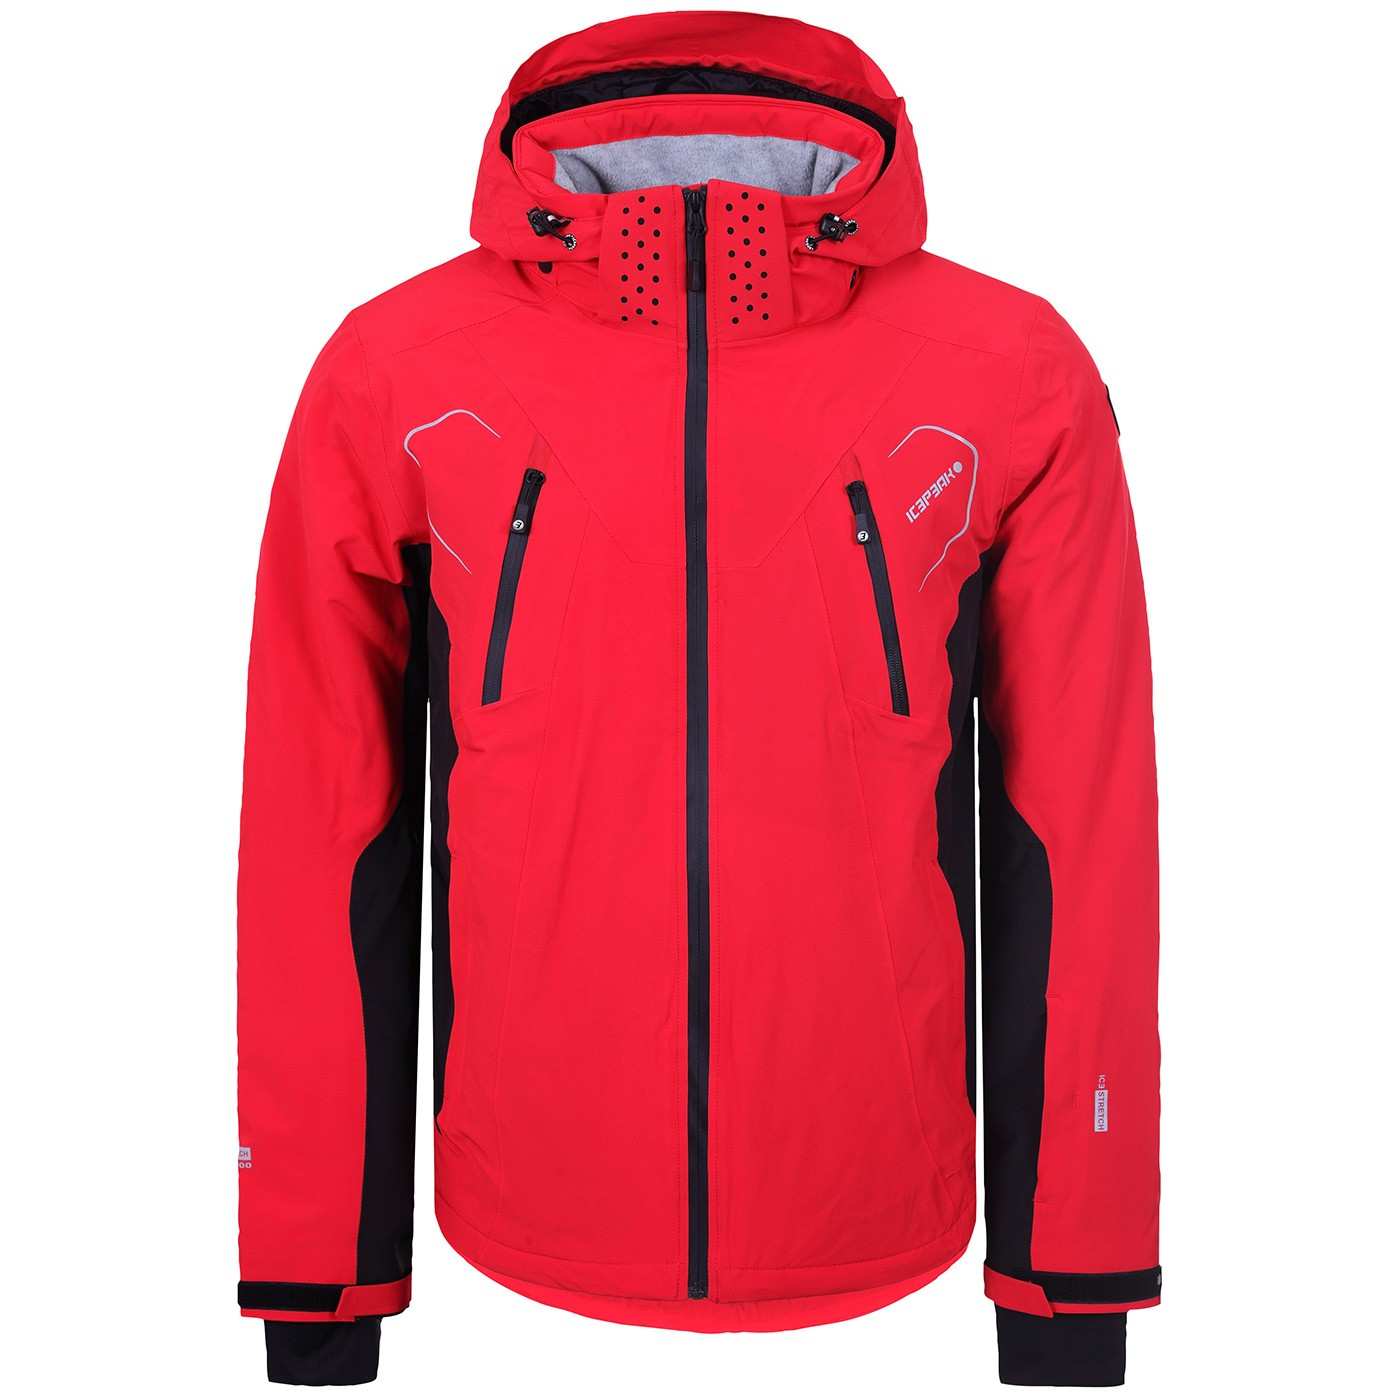 best value outlet store really comfortable Veste ski Icepeak Nemo Homme